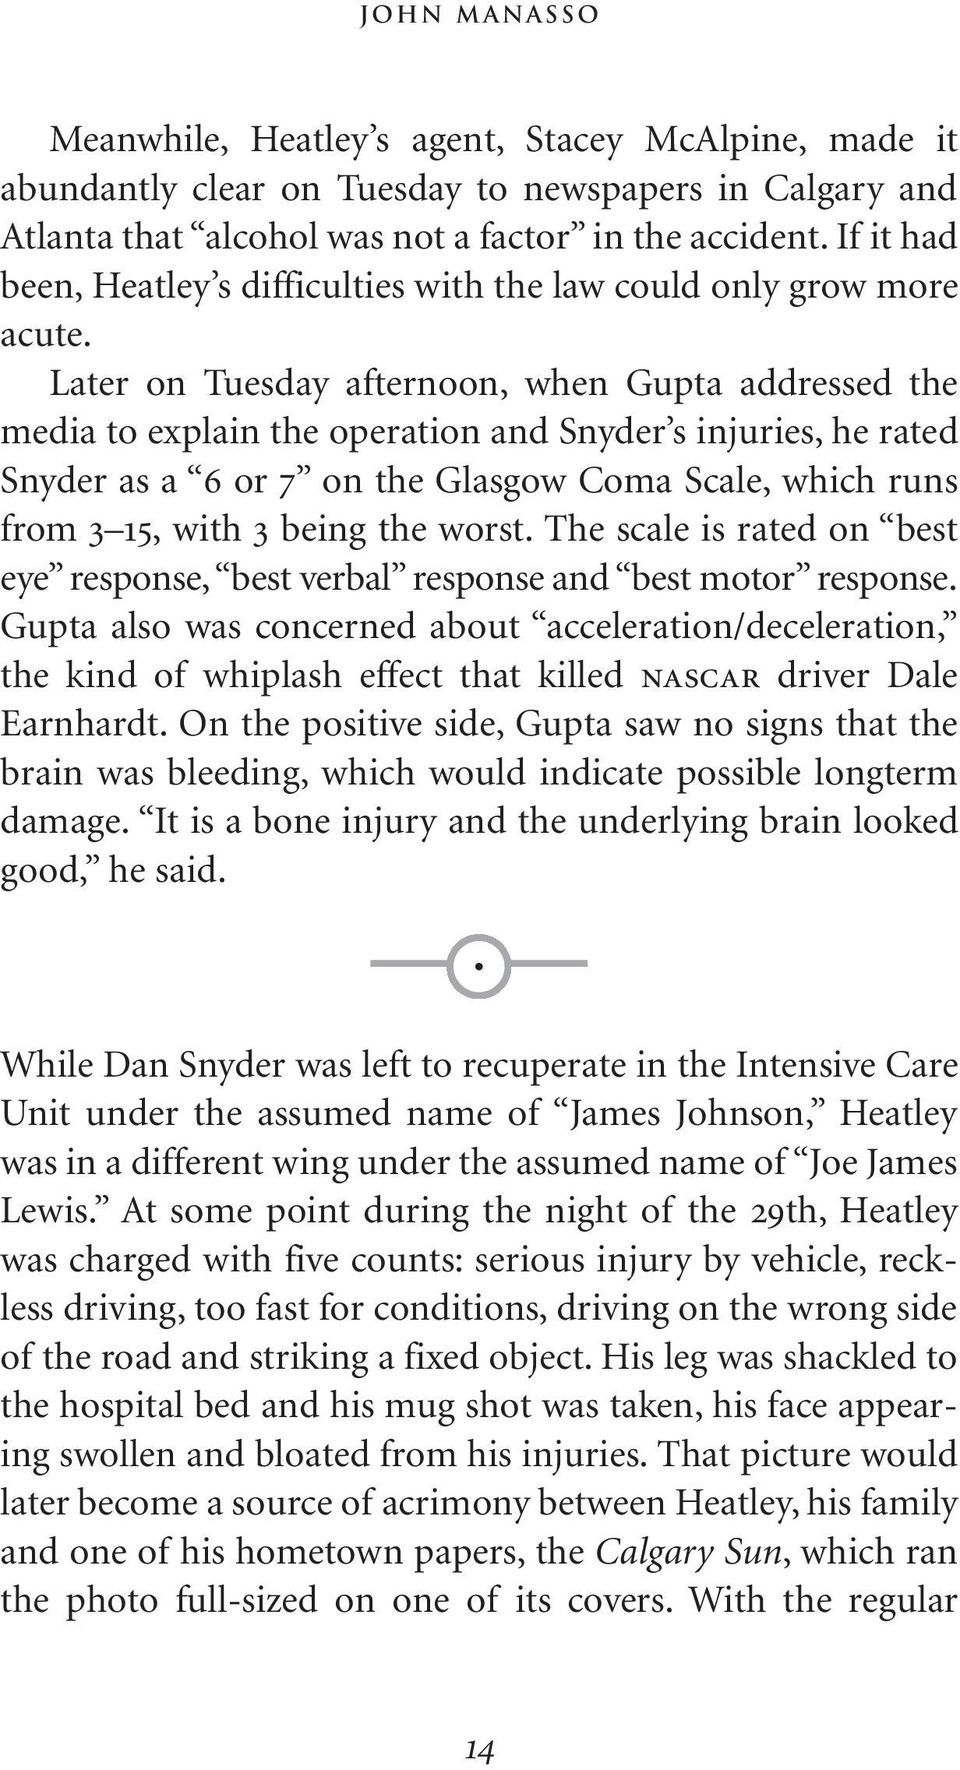 Later on Tuesday afternoon, when Gupta addressed the media to explain the operation and Snyder s injuries, he rated Snyder as a 6 or 7 on the Glasgow Coma Scale, which runs from 3 15, with 3 being